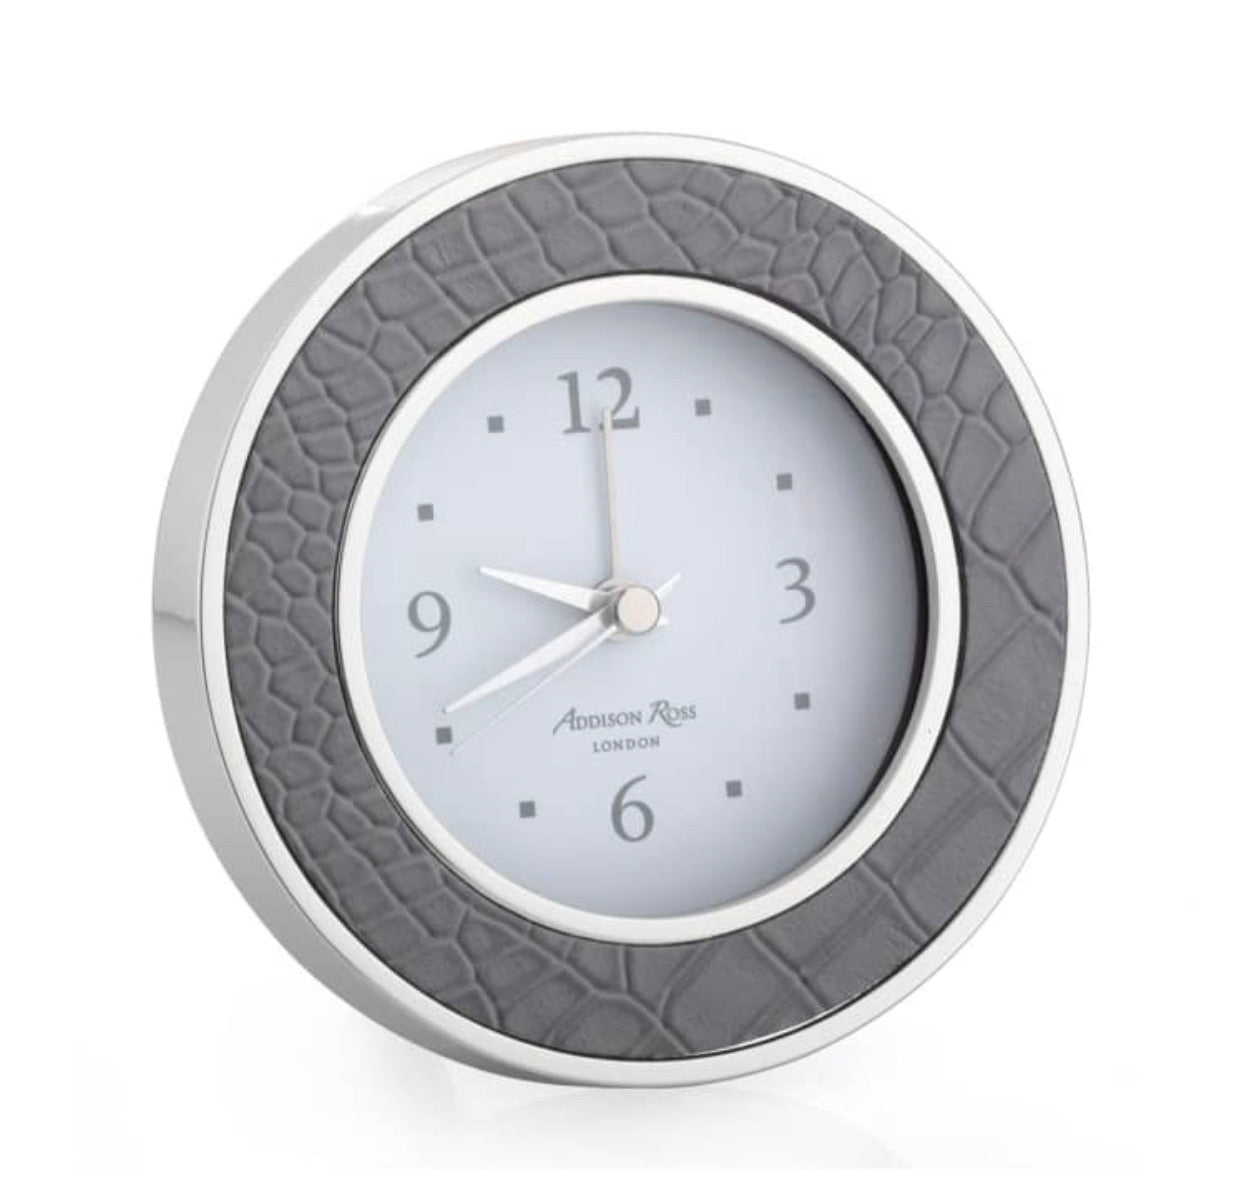 Addison Ross - Dove Croc Silver Alarm Clock